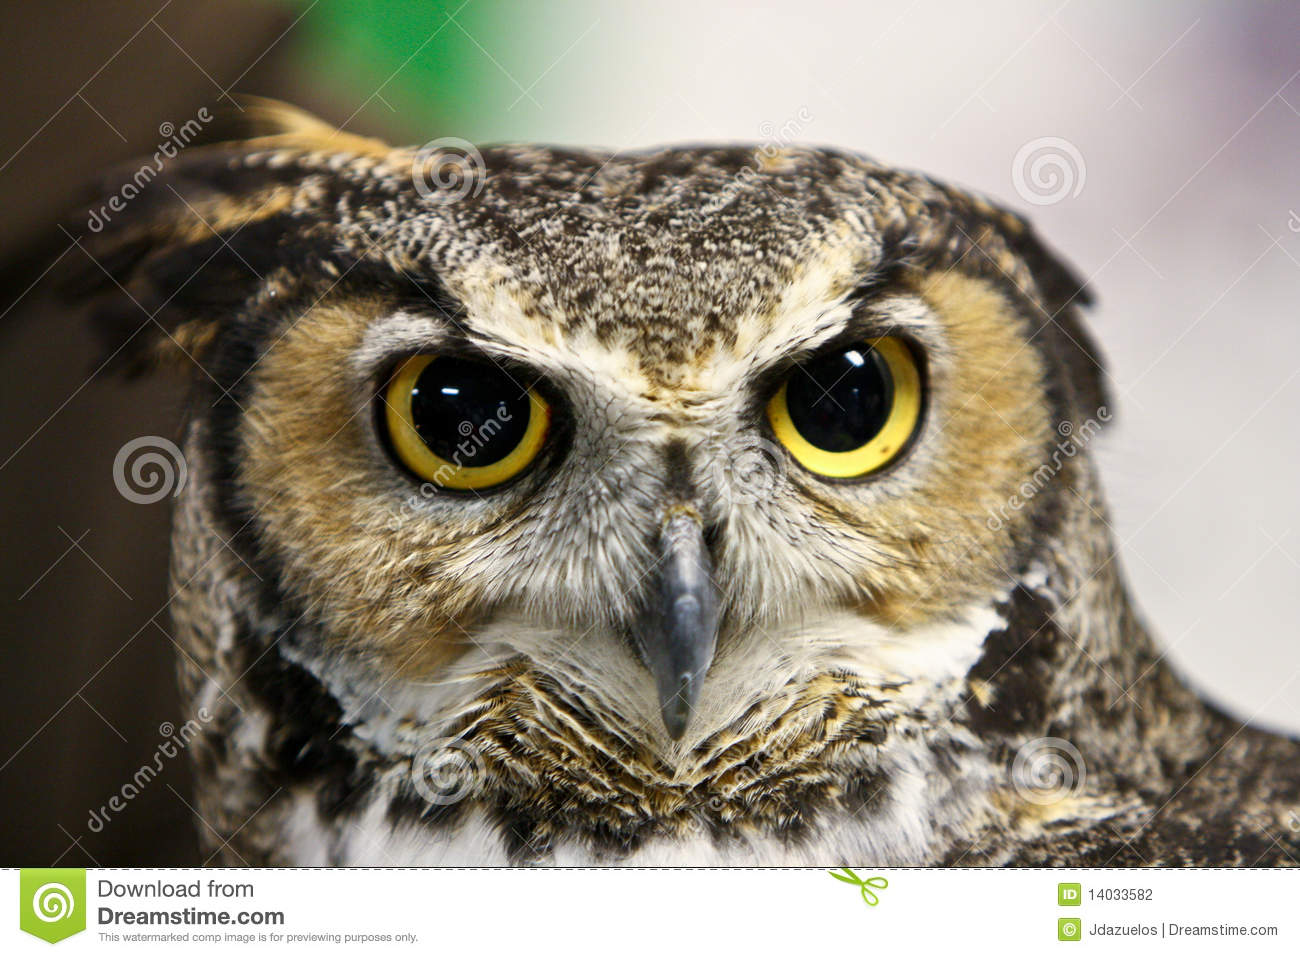 Scary owl face